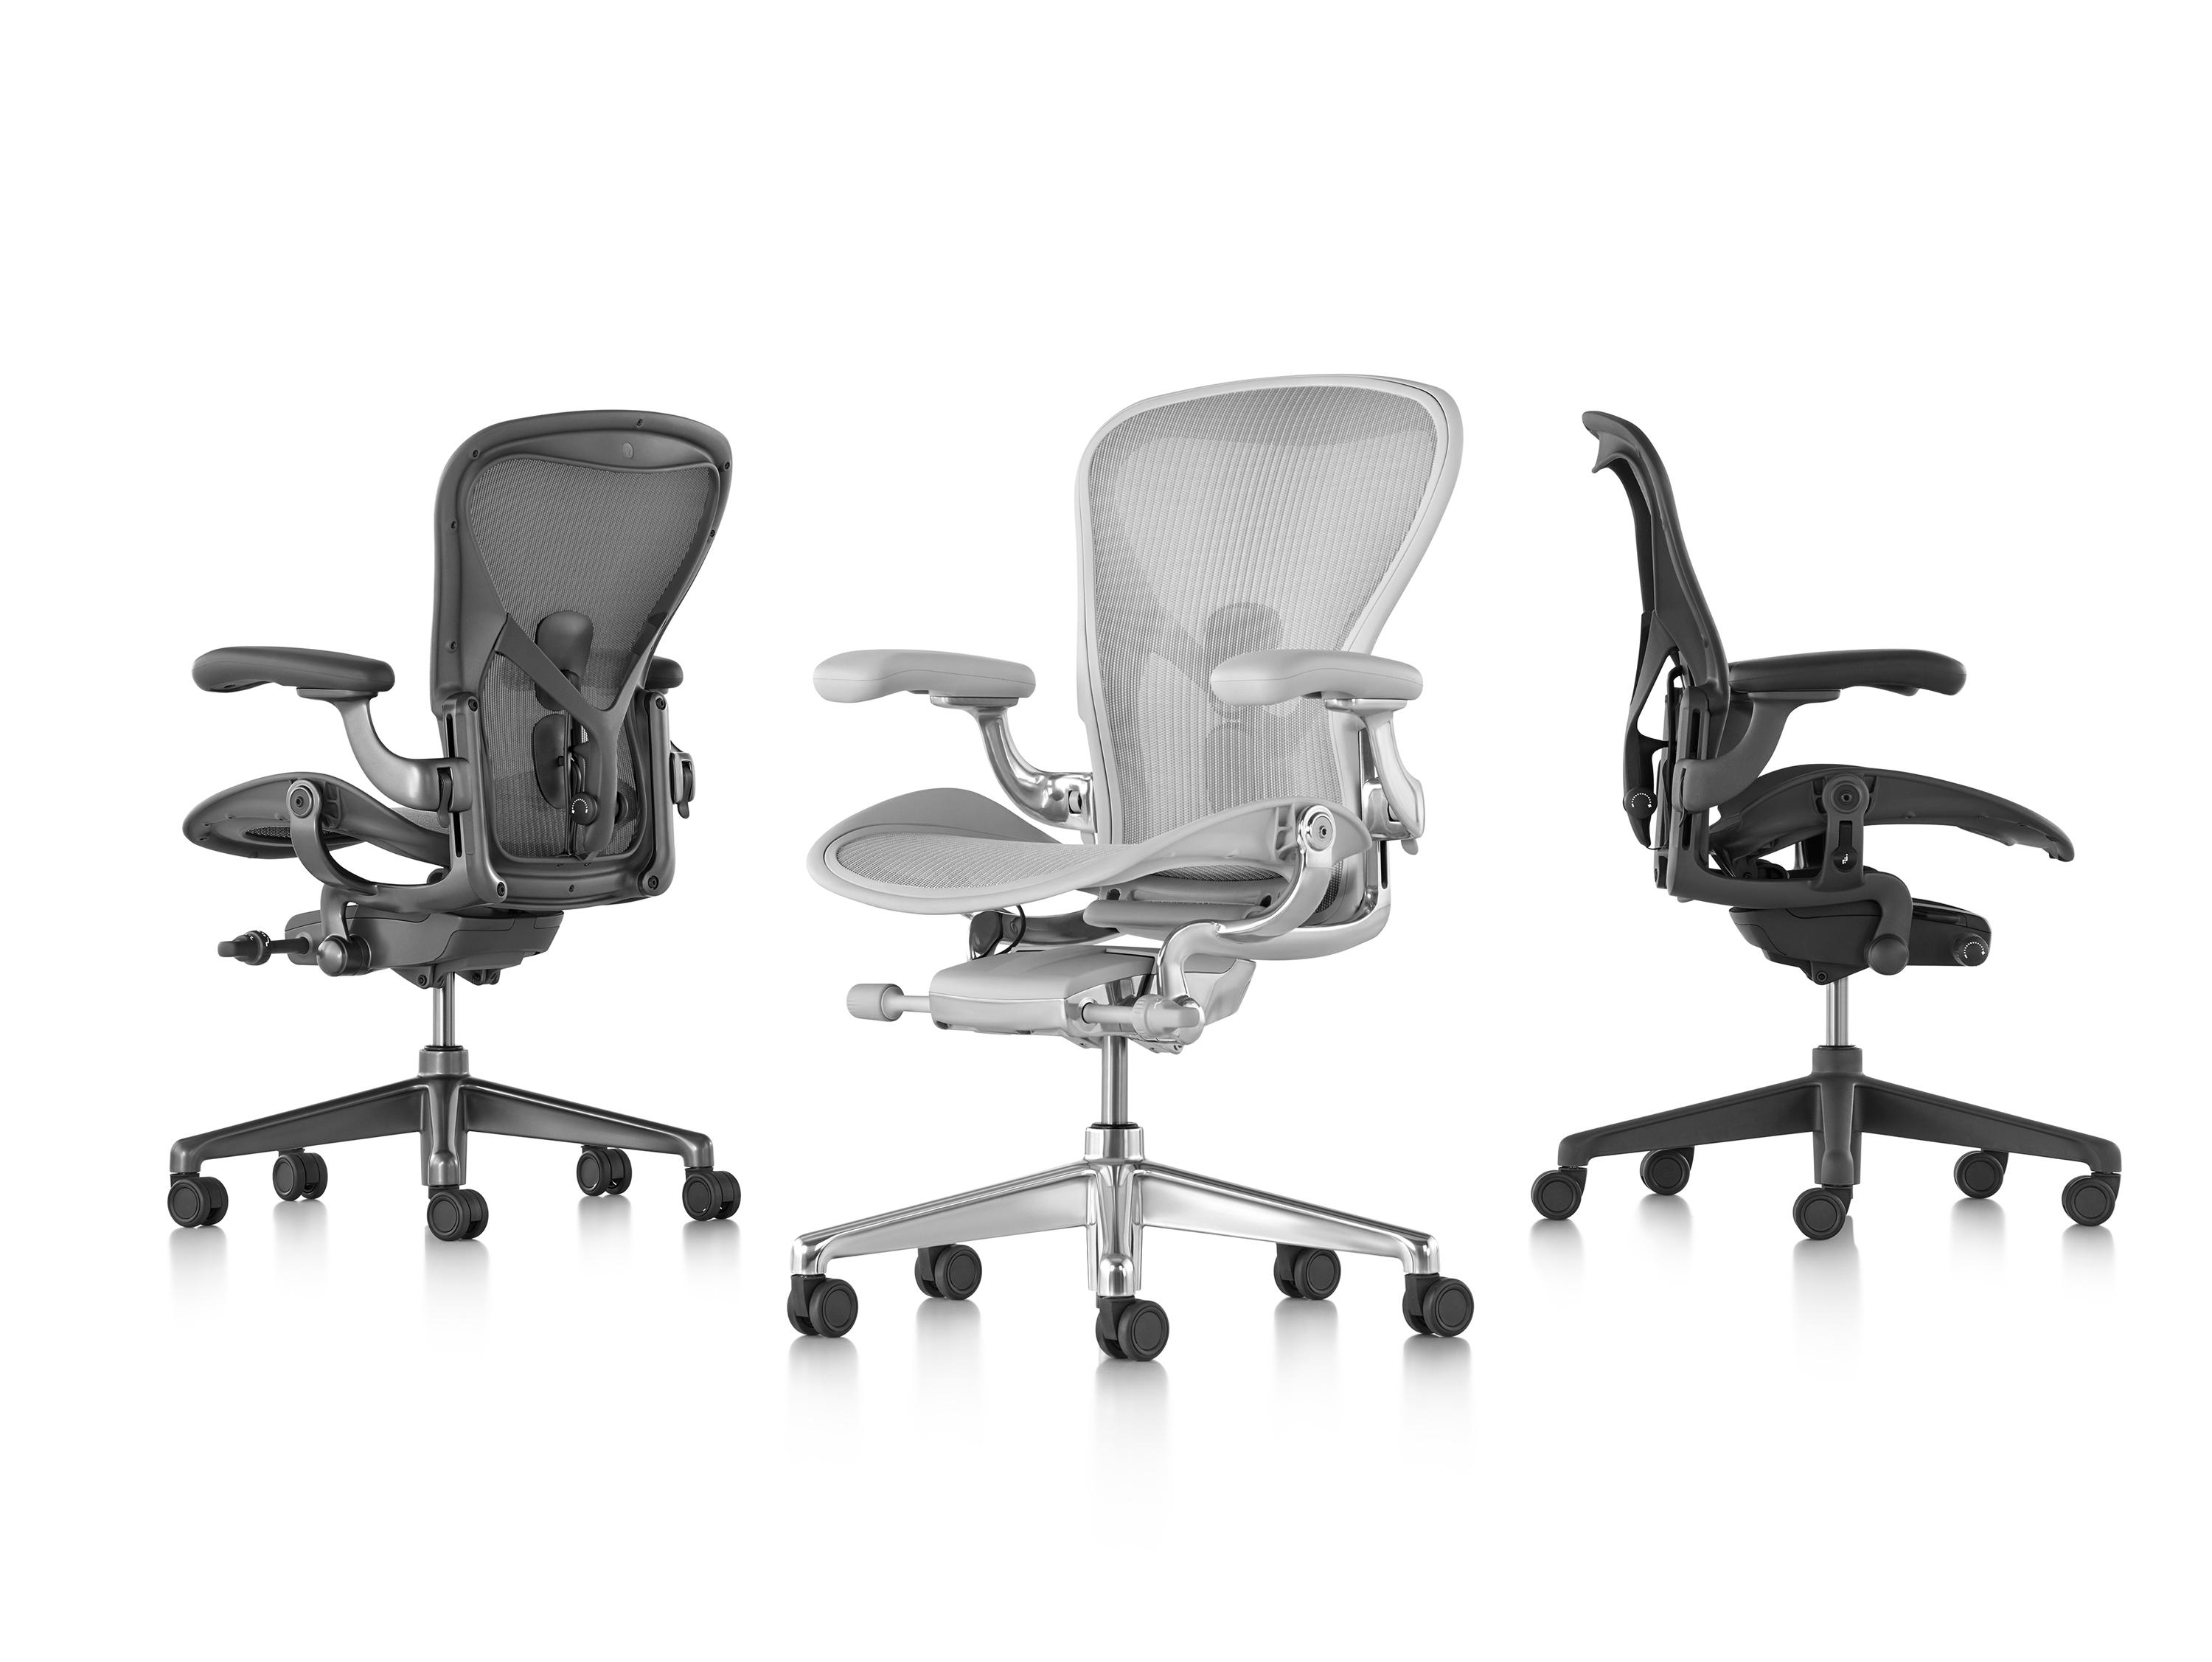 AERON CHAIR Task chairs from Herman Miller